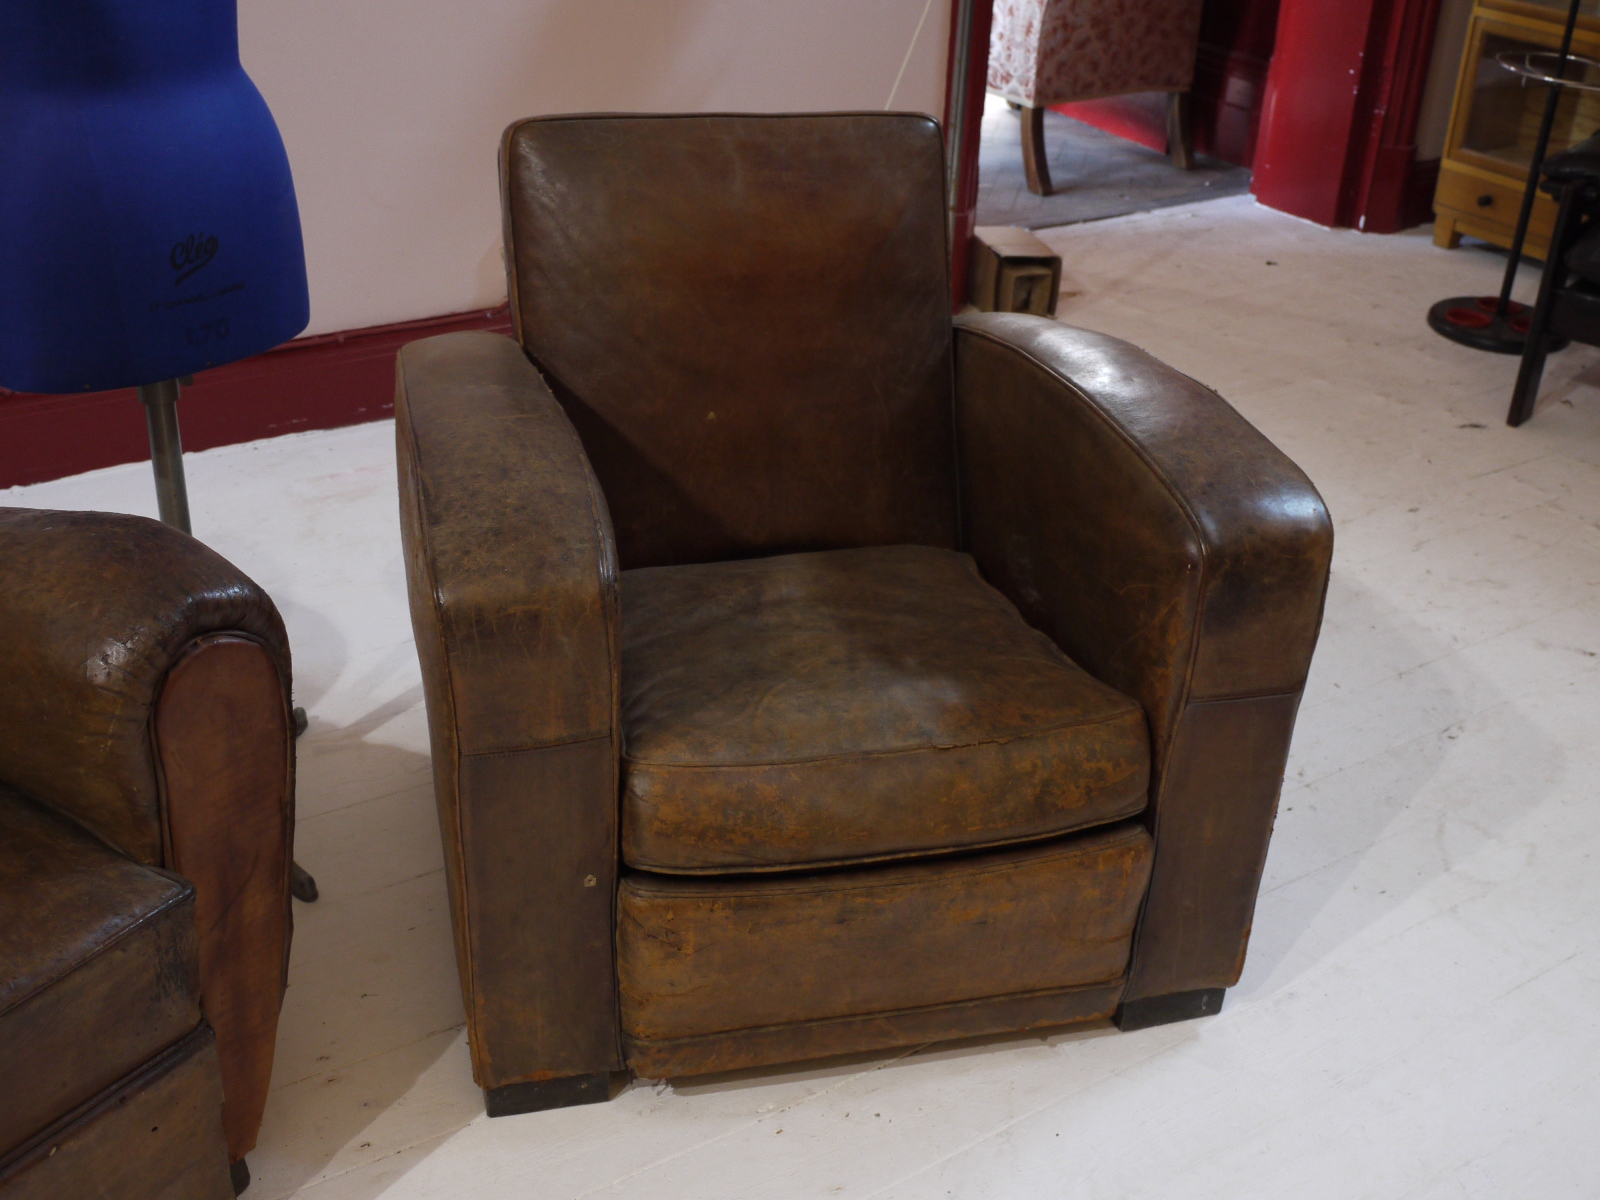 VINTAGE 1920s FRENCH LEATHER CLUB CHAIR Eras of Style